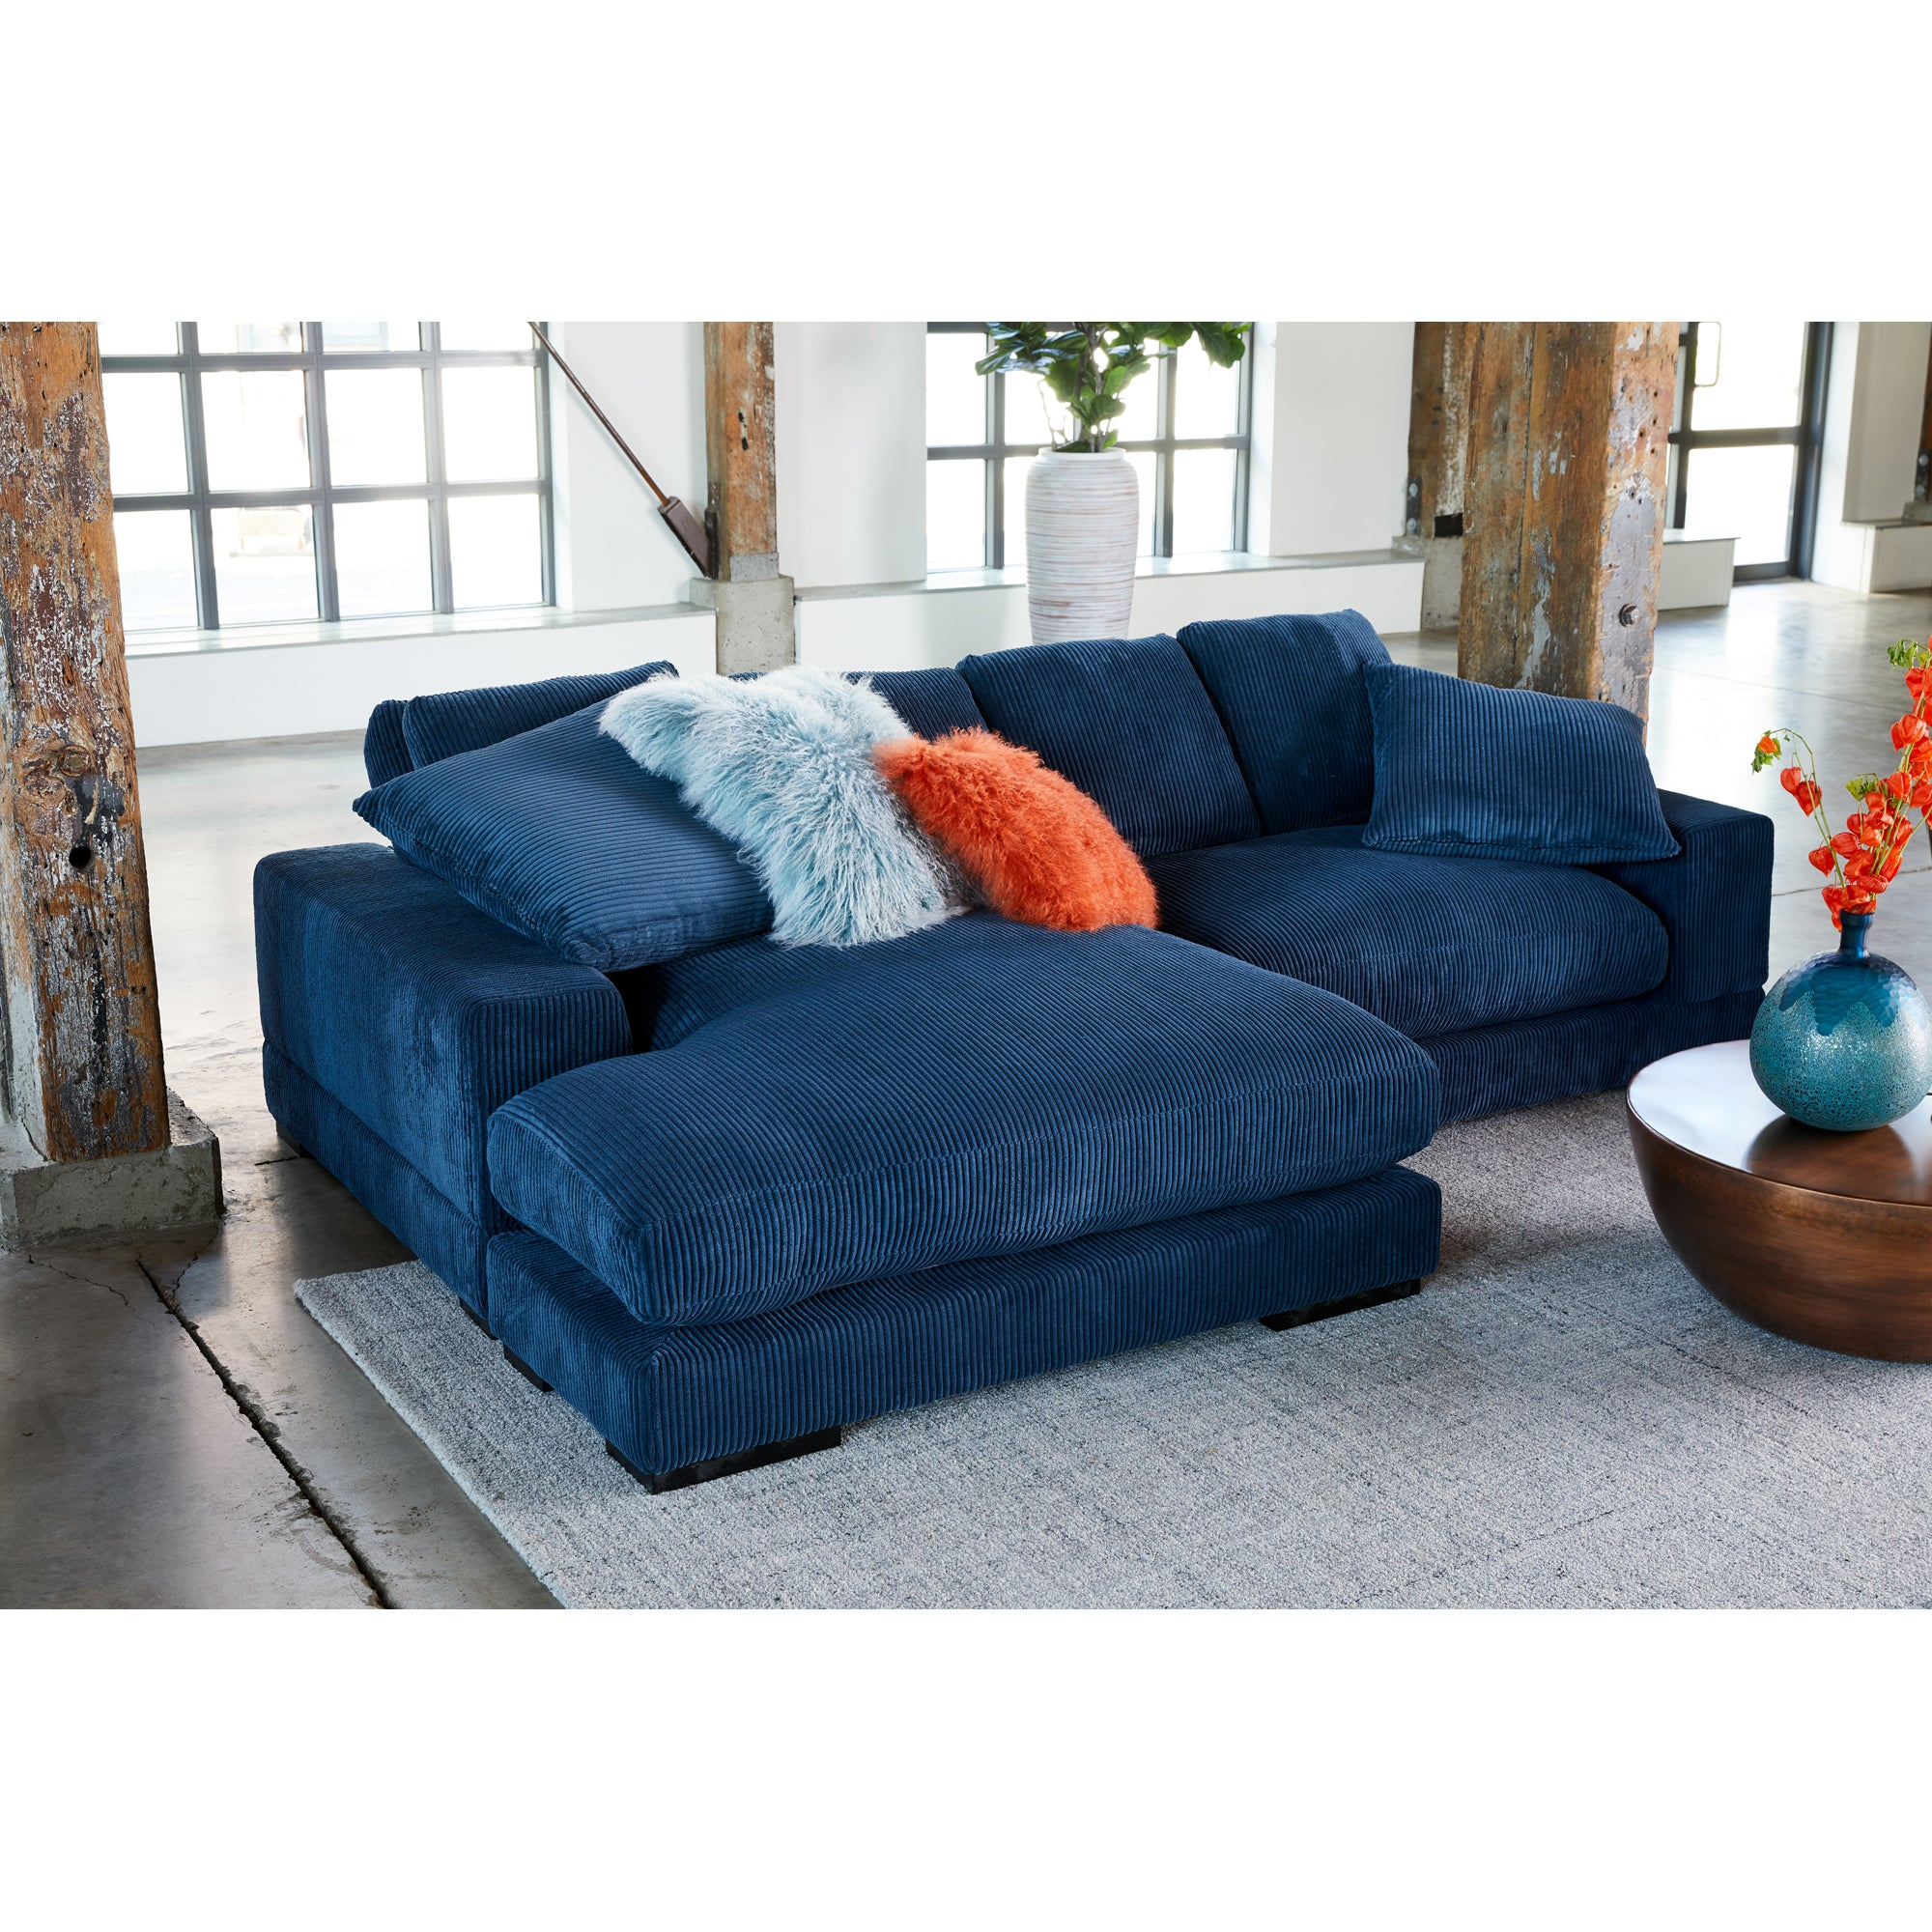 Plunge Sectional